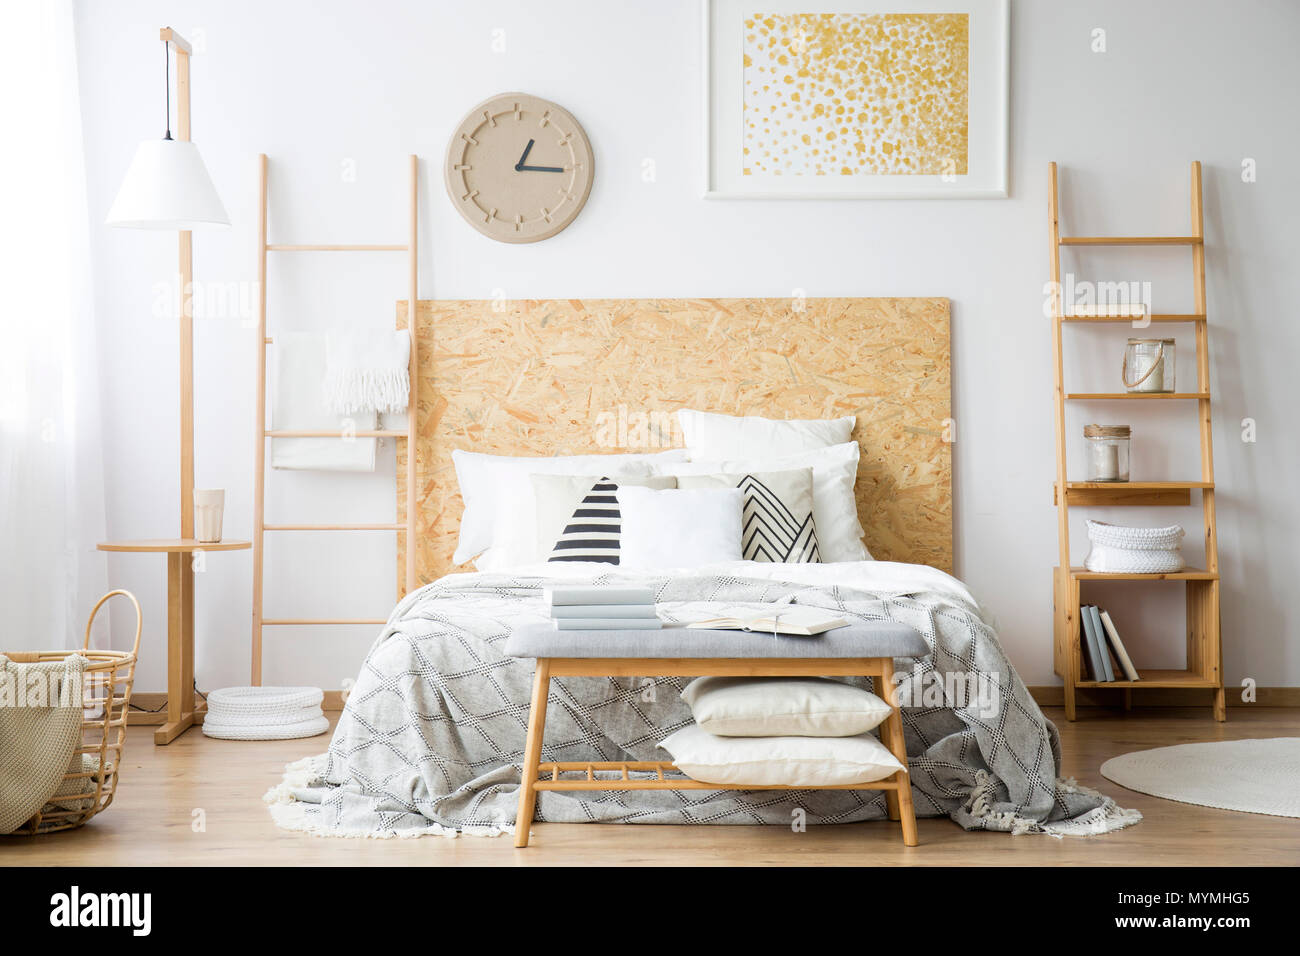 Comfy double bed standing in between two ladders in a monochromatic bedroom interior - Stock Image